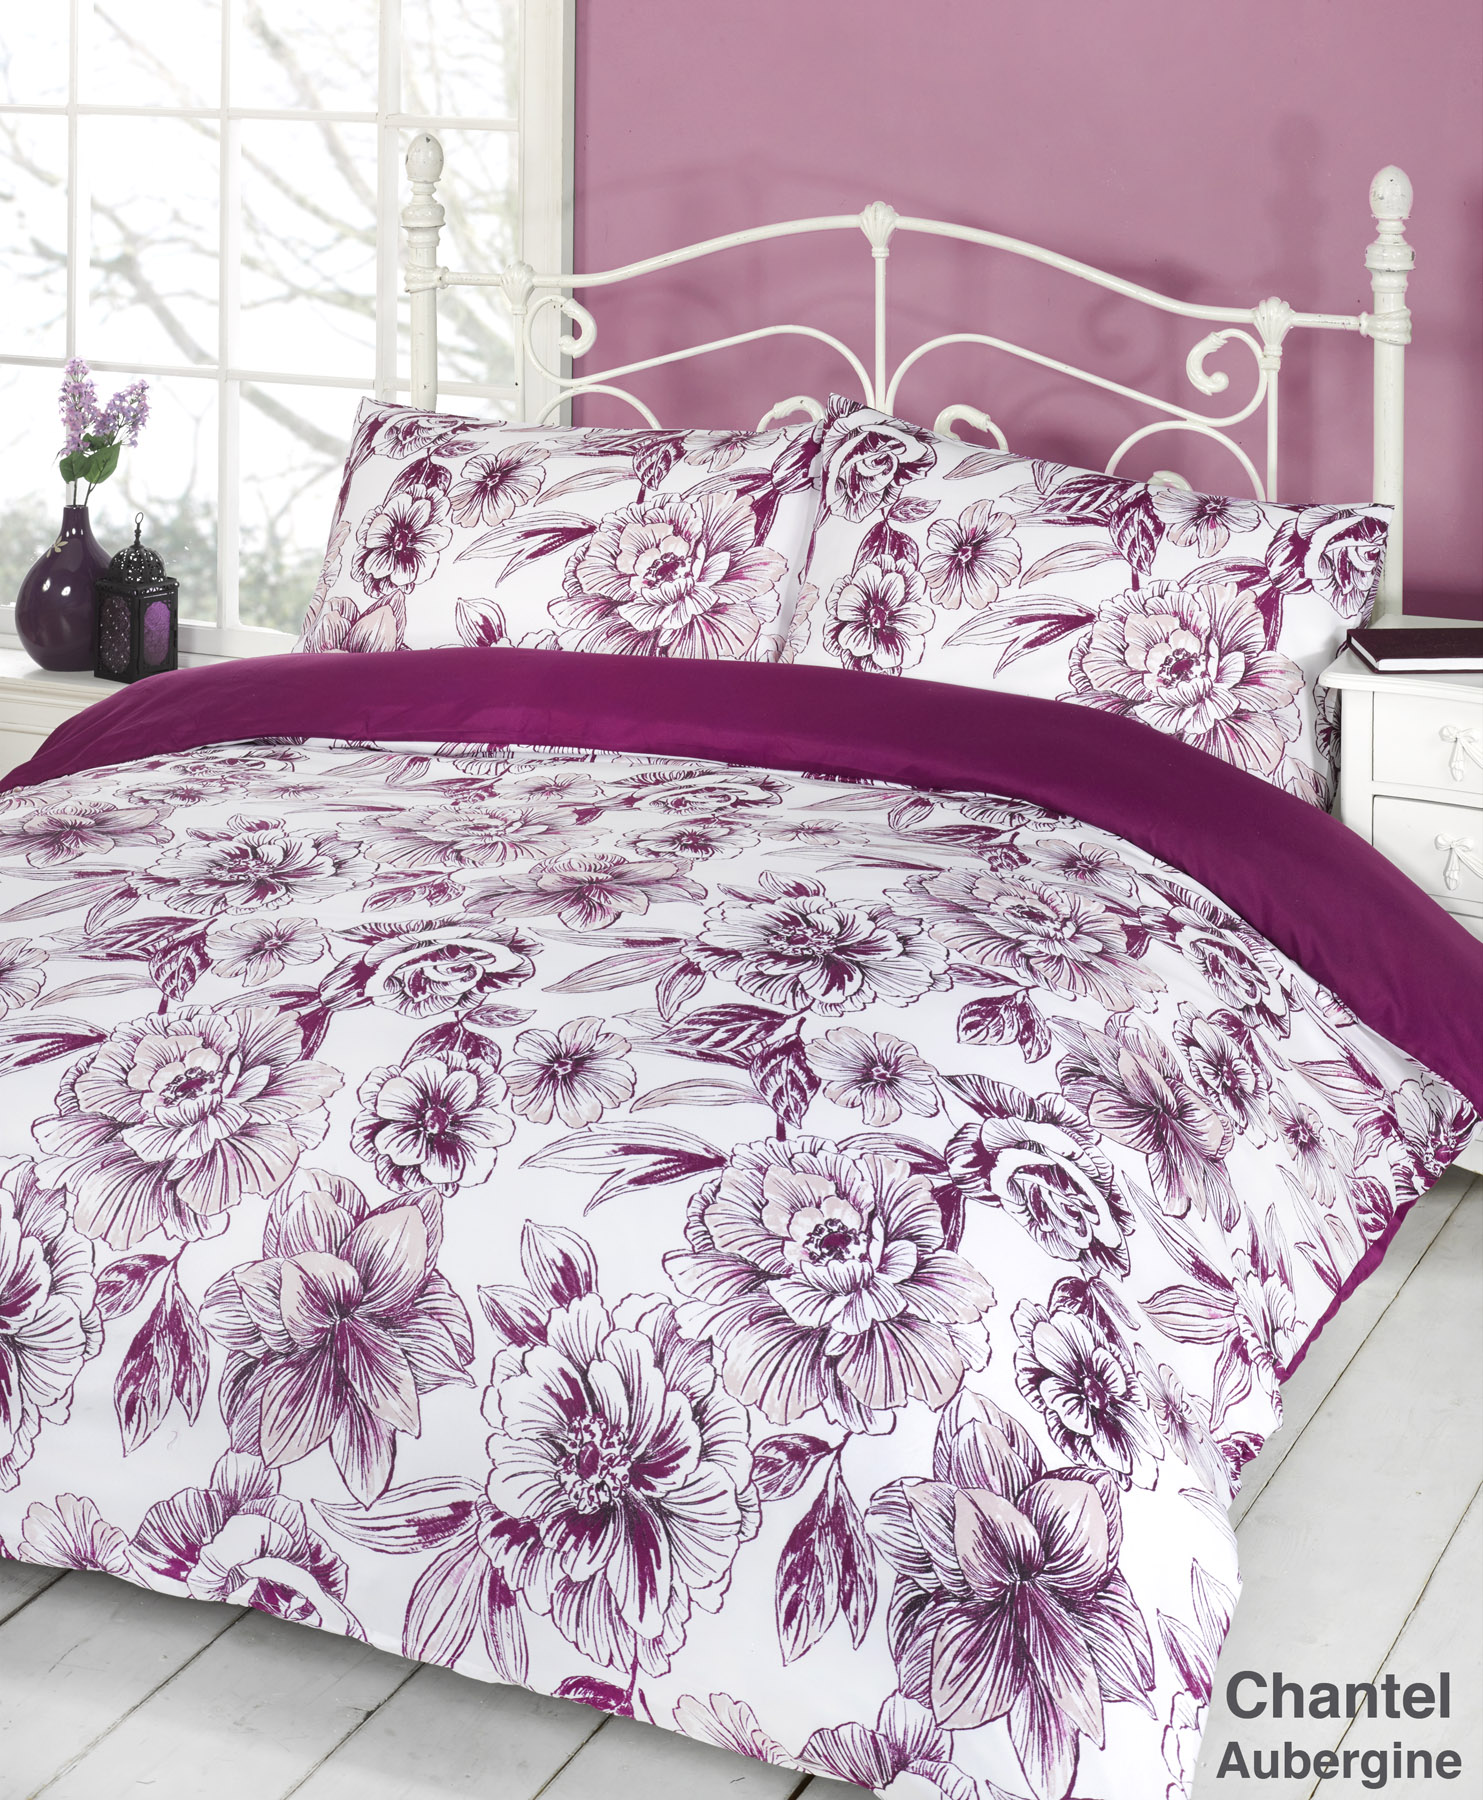 duvet quilt cover bedding set all colours single double king size superking size ebay. Black Bedroom Furniture Sets. Home Design Ideas